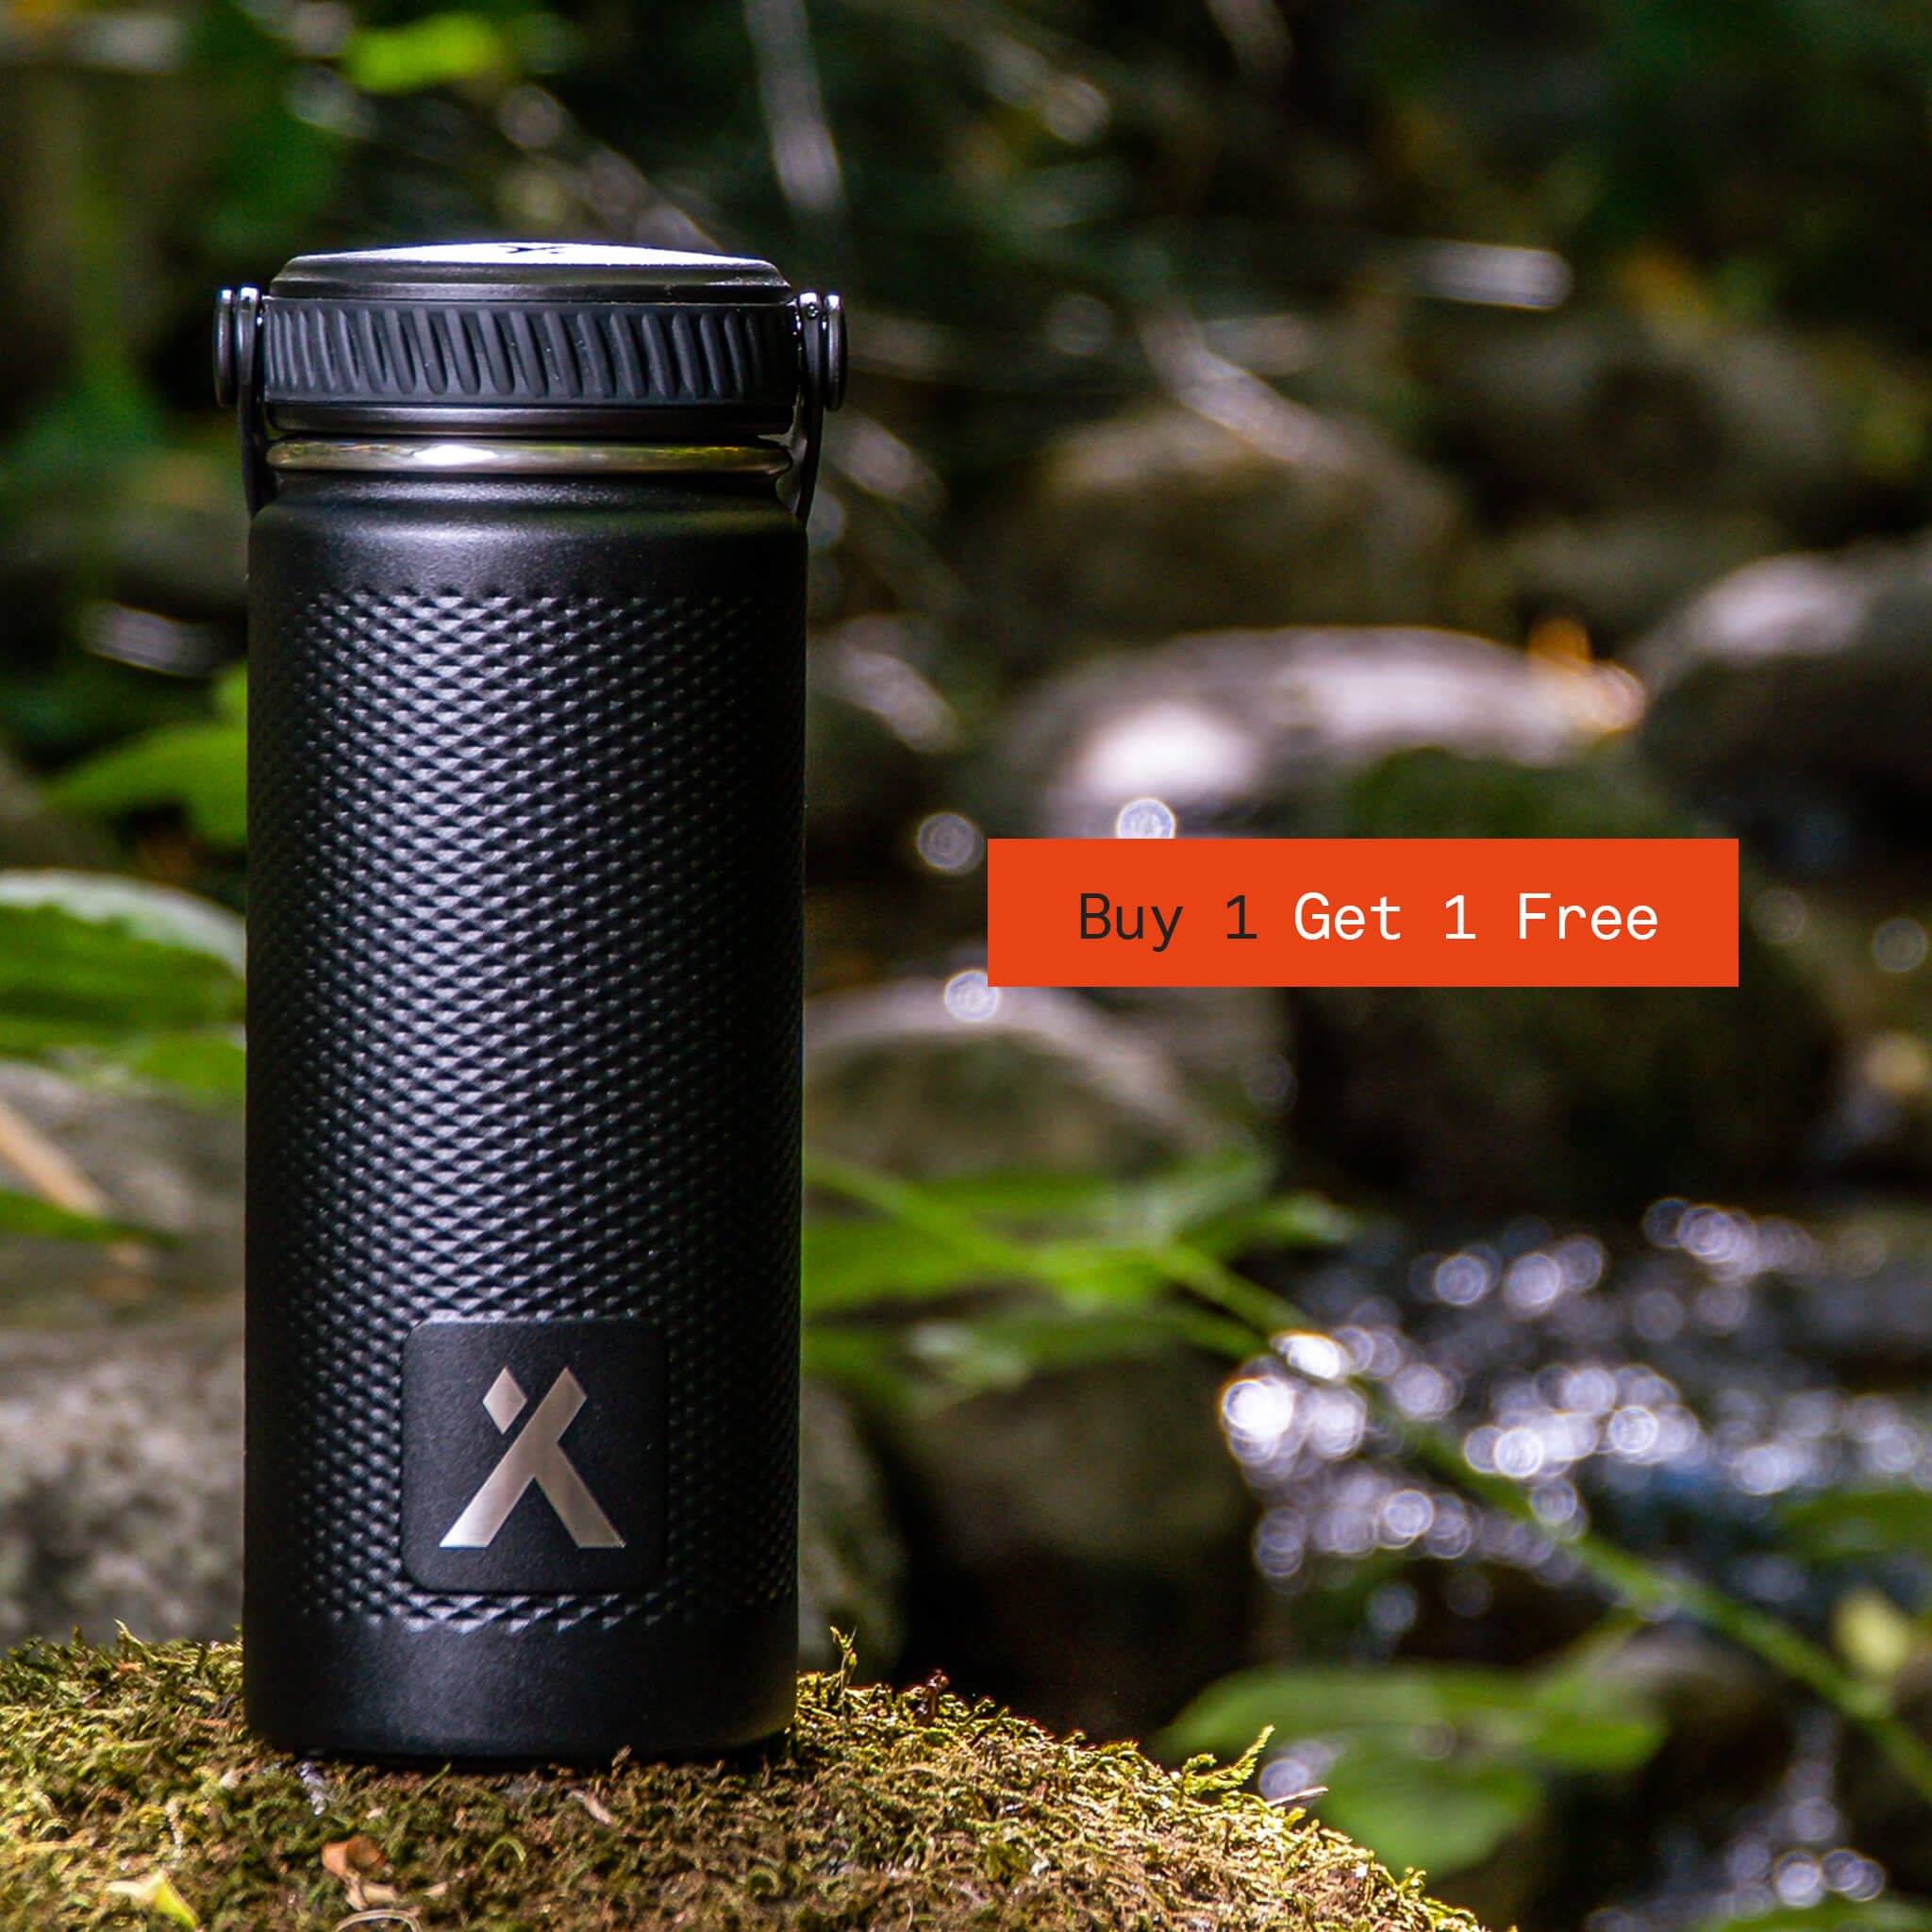 2 for 1 Insulated Water Bottle Bear Grylls